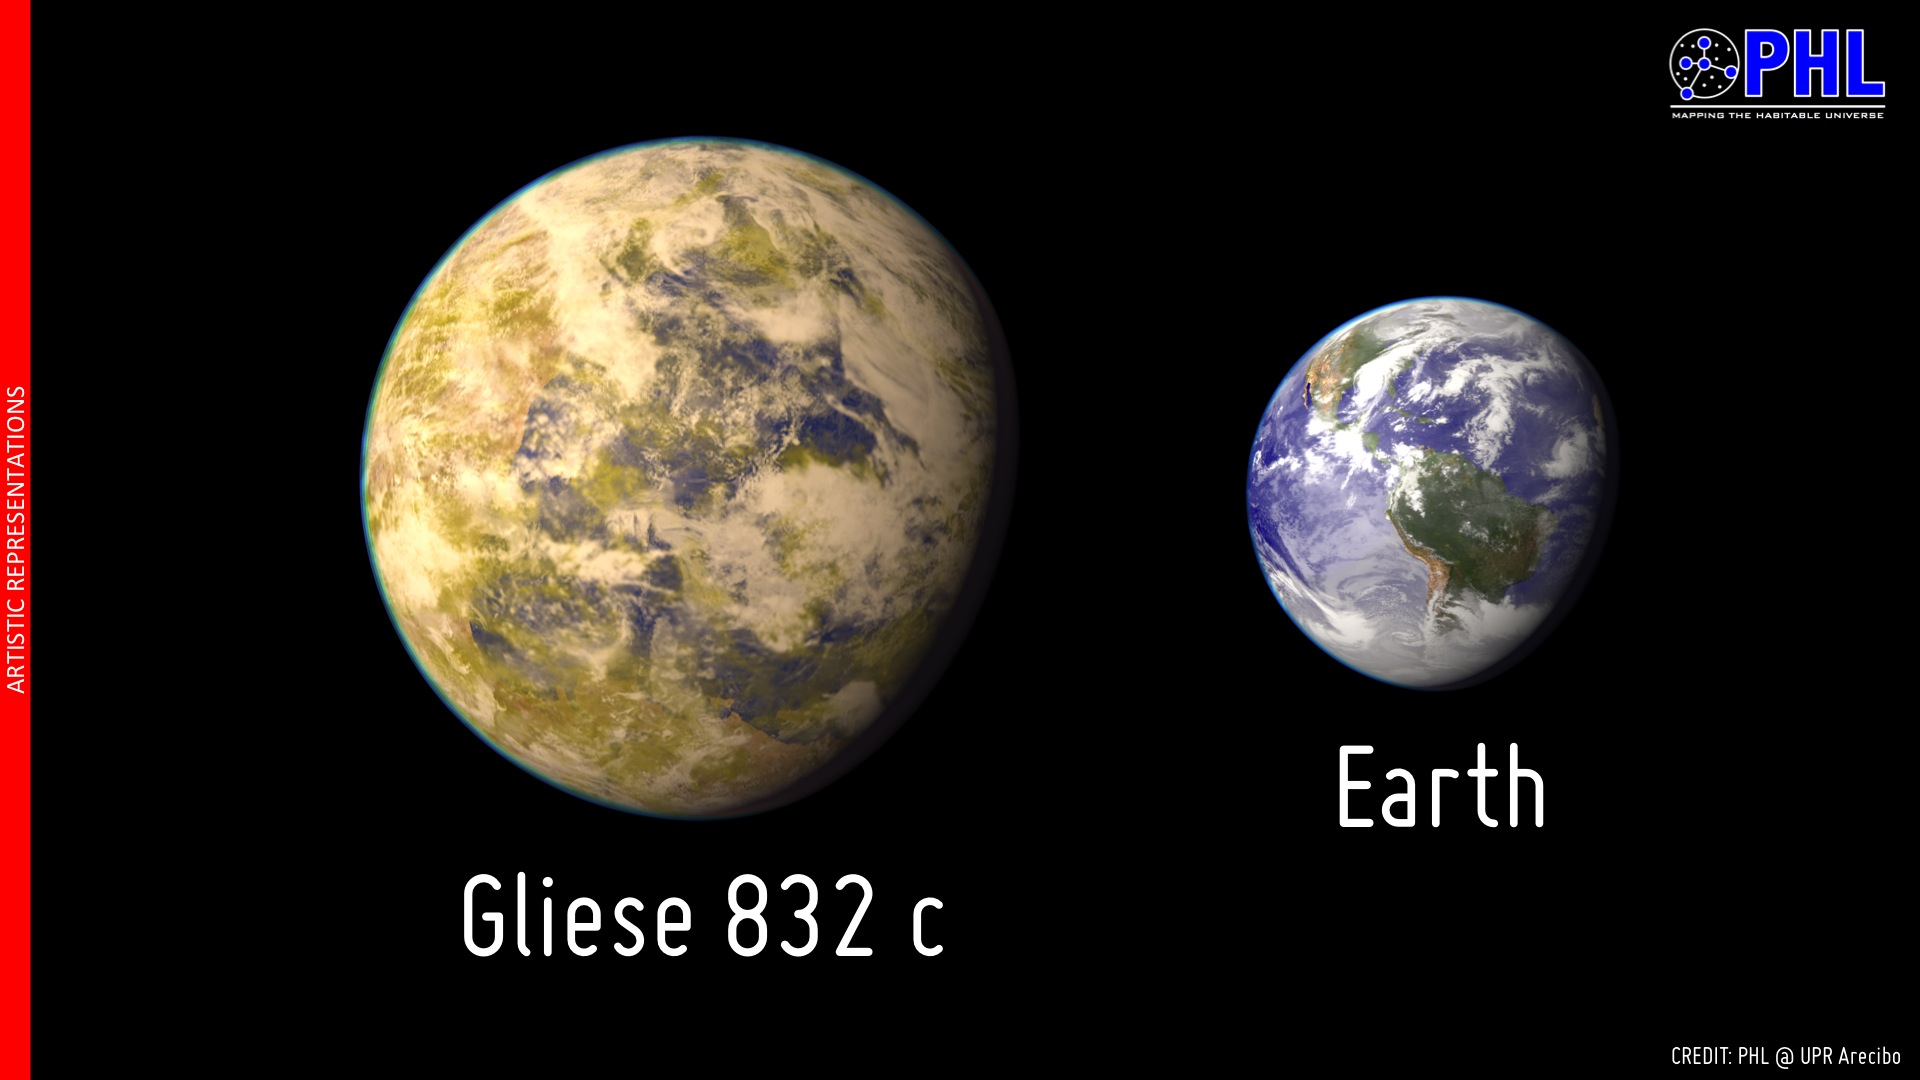 APOD: 2014 July 9 - Gliese 832c: The Closest Potentially